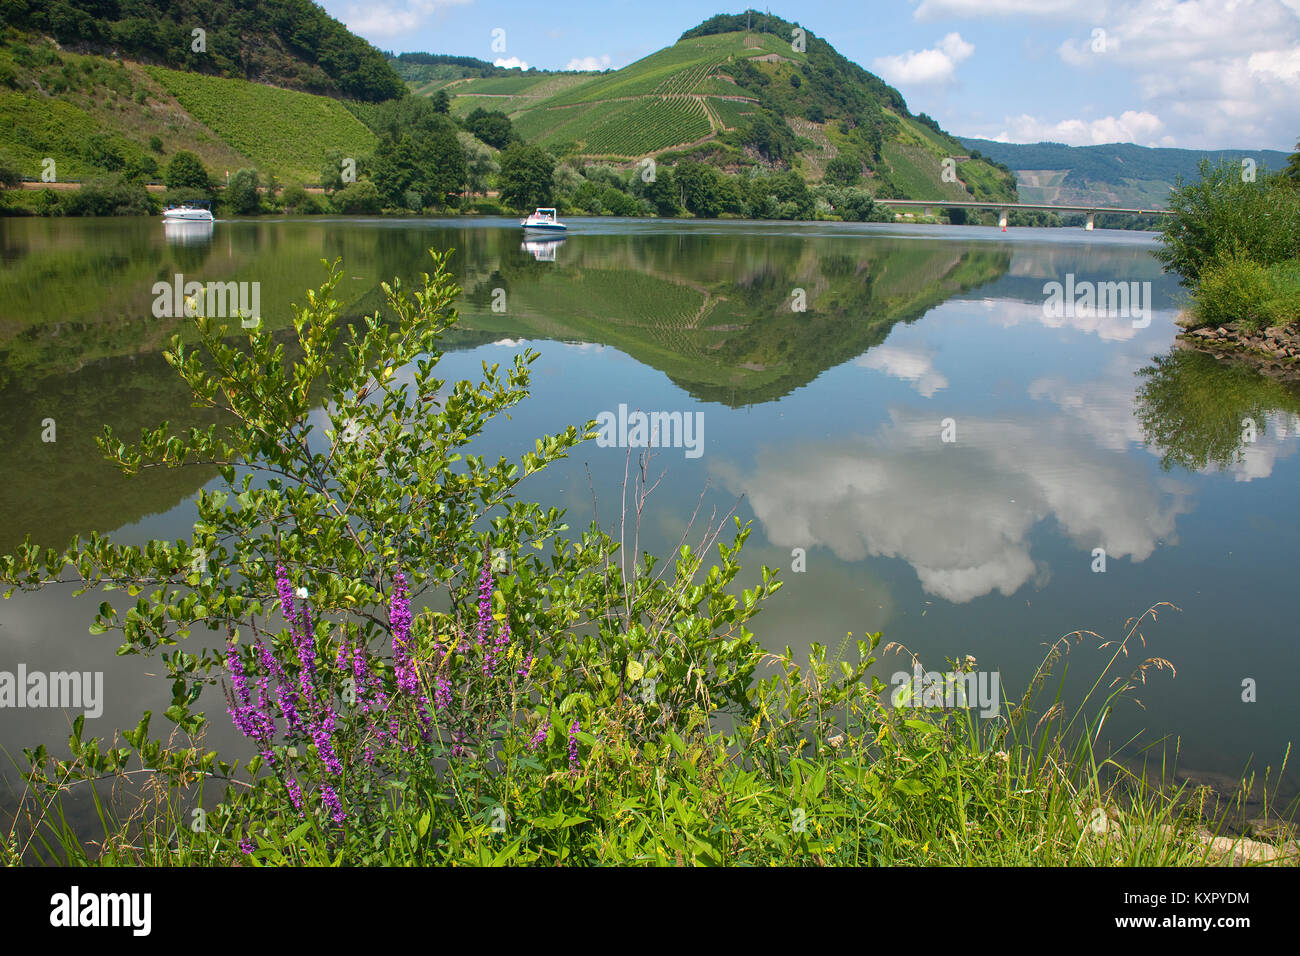 Motor boats on Moselle river, shore with wild flowers, Neumagen-Dhron, Moselle river, Rhineland-Palatinate, Germany, - Stock Image